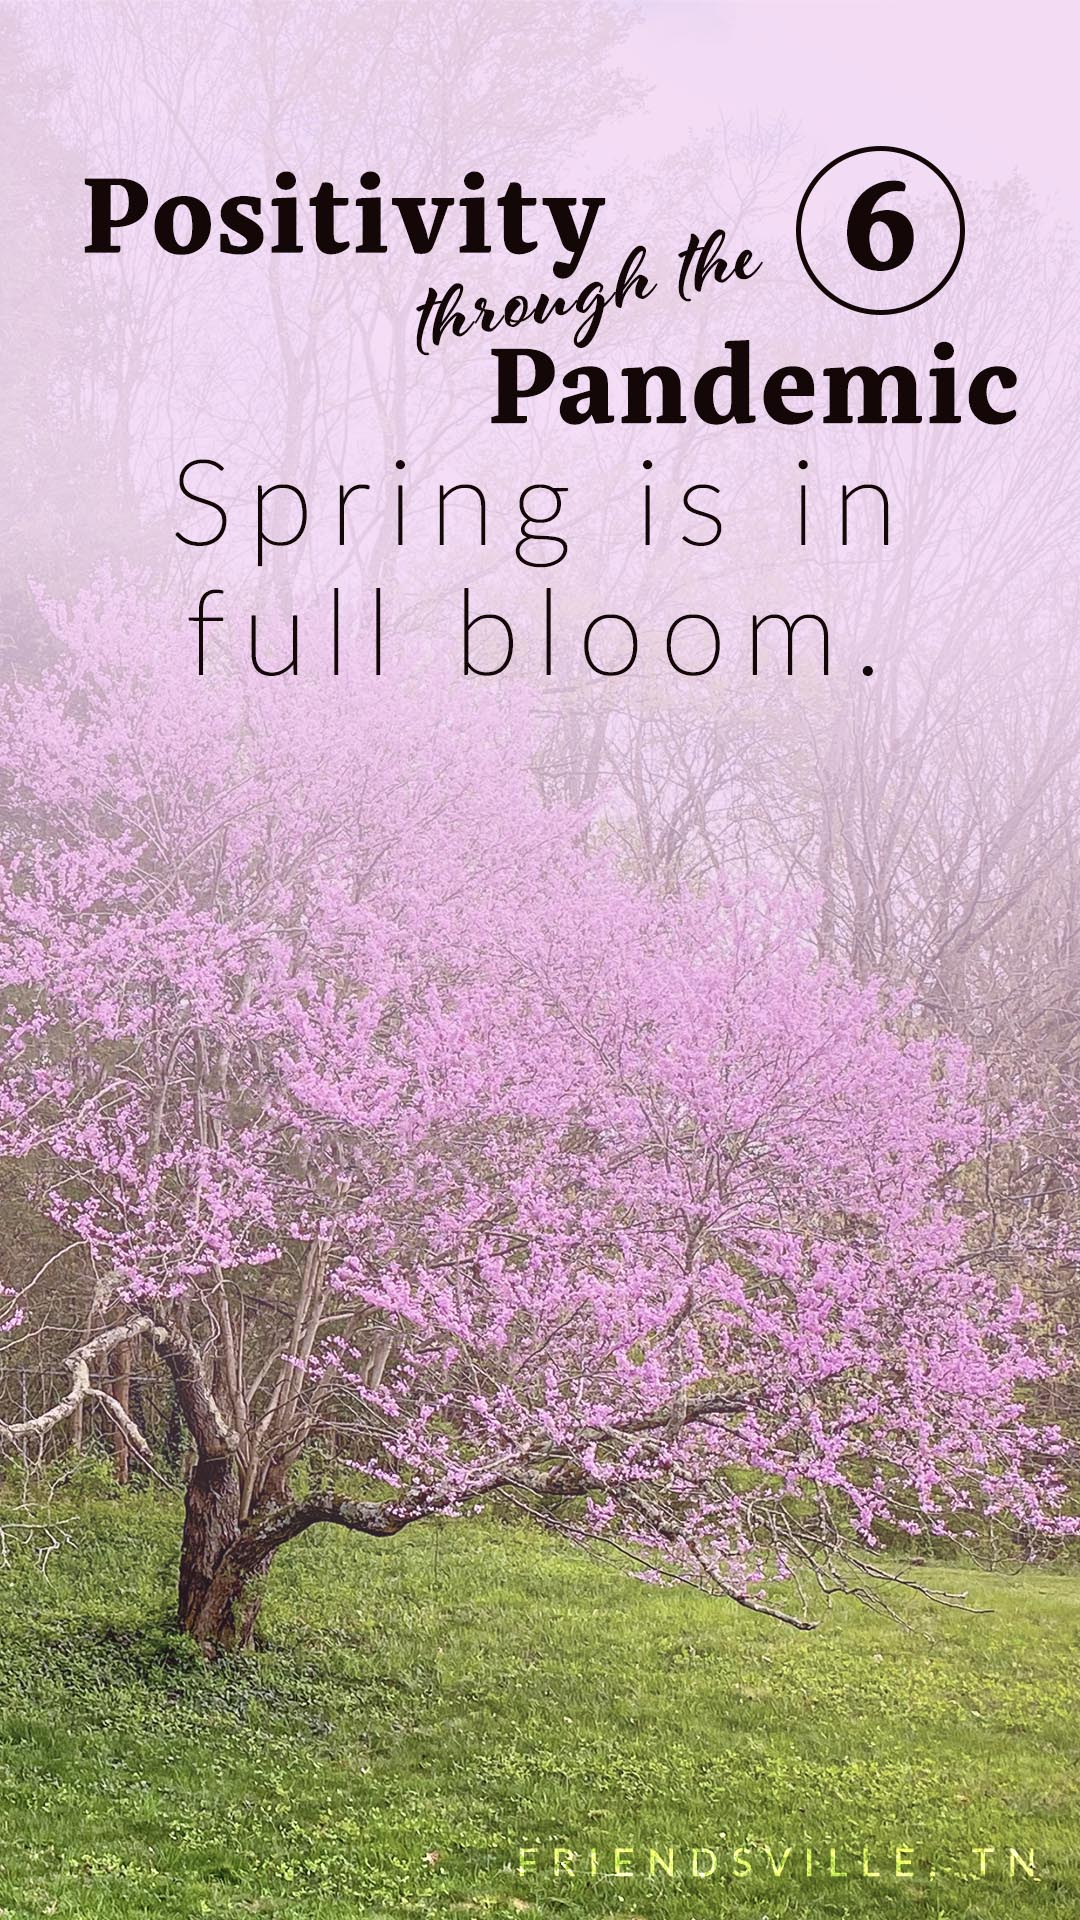 Positivity through the Pandemic #6: Spring is in full bloom